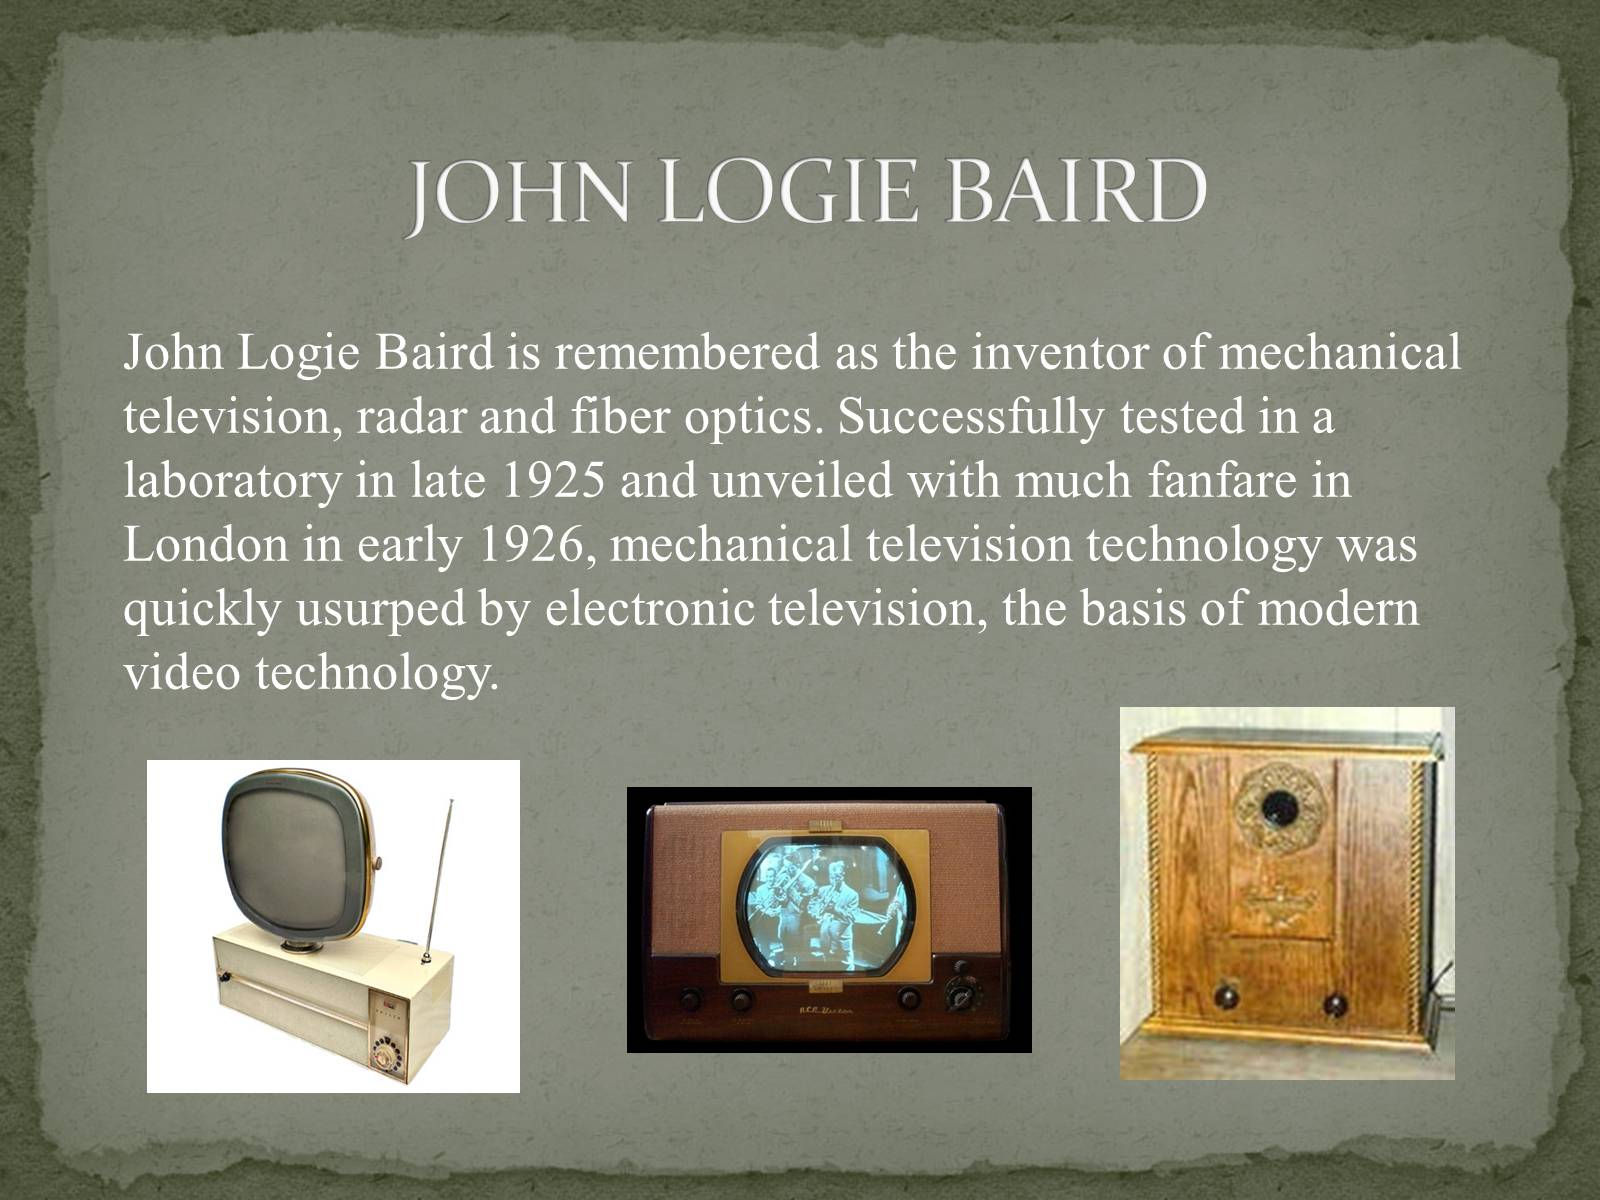 Презентація на тему «The Greatest inventors and invetentions John Logie Baird invented television» - Слайд #12